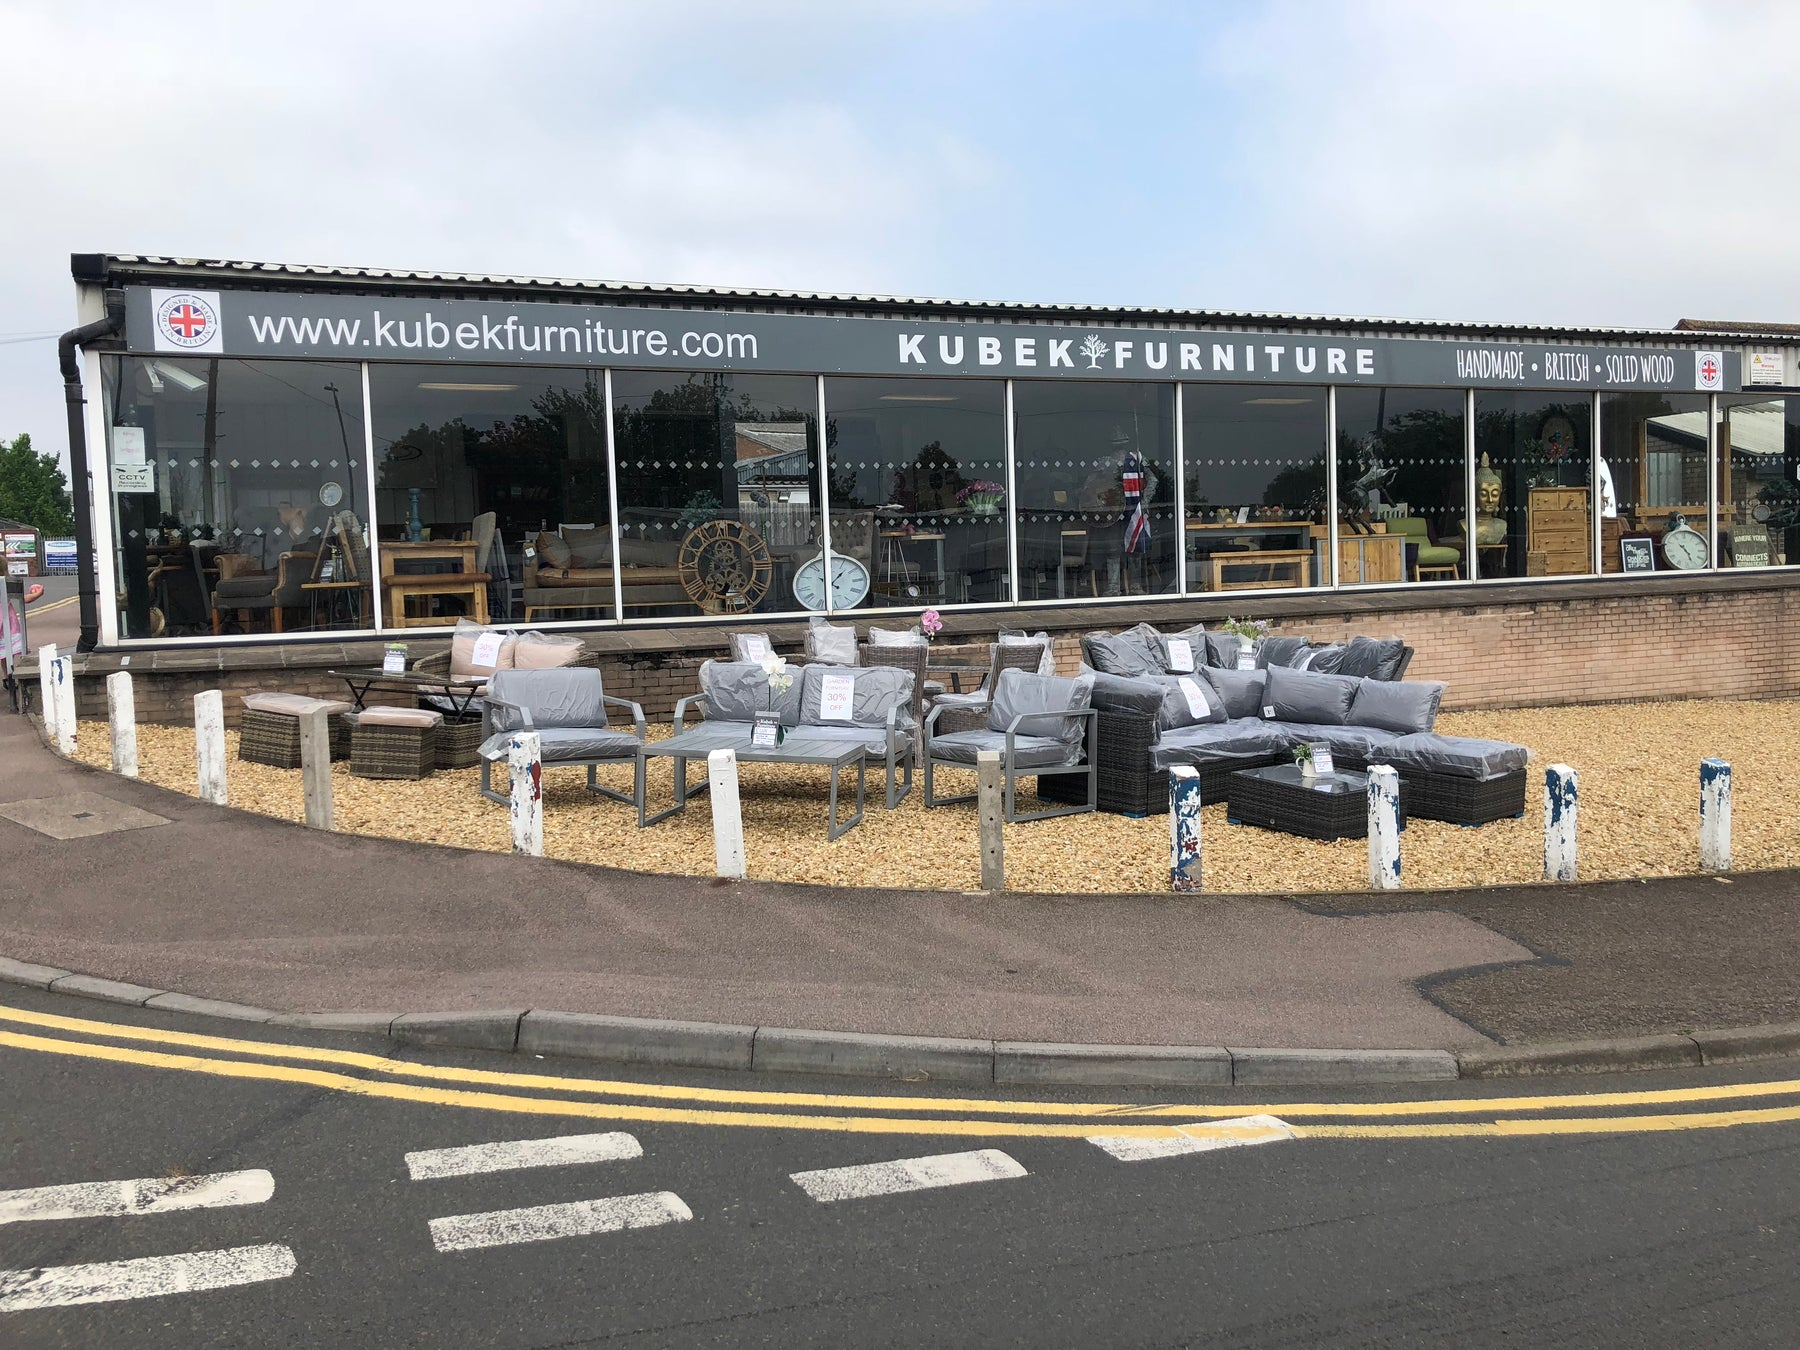 Our New Store in Melton Mowbray